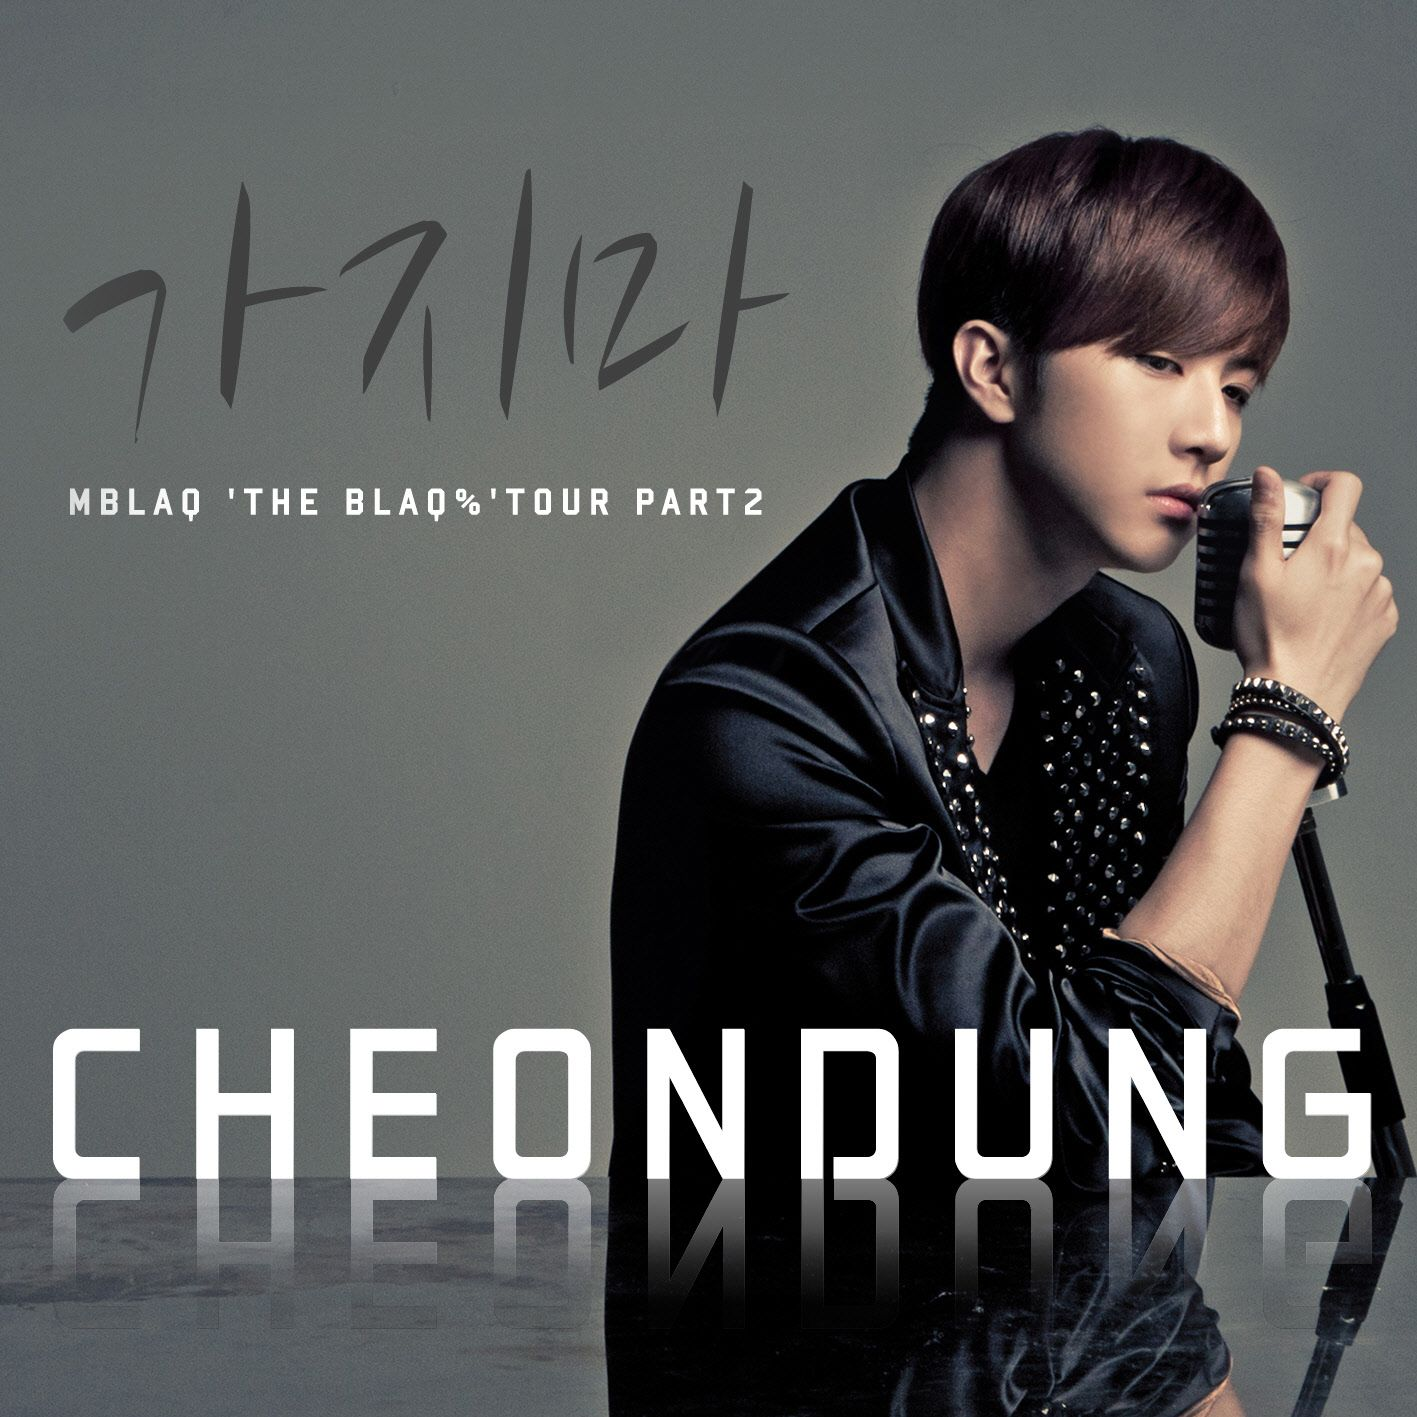 [Single] Thunder (MBLAQ) - 'THE BLAQ%' TOUR PART 2